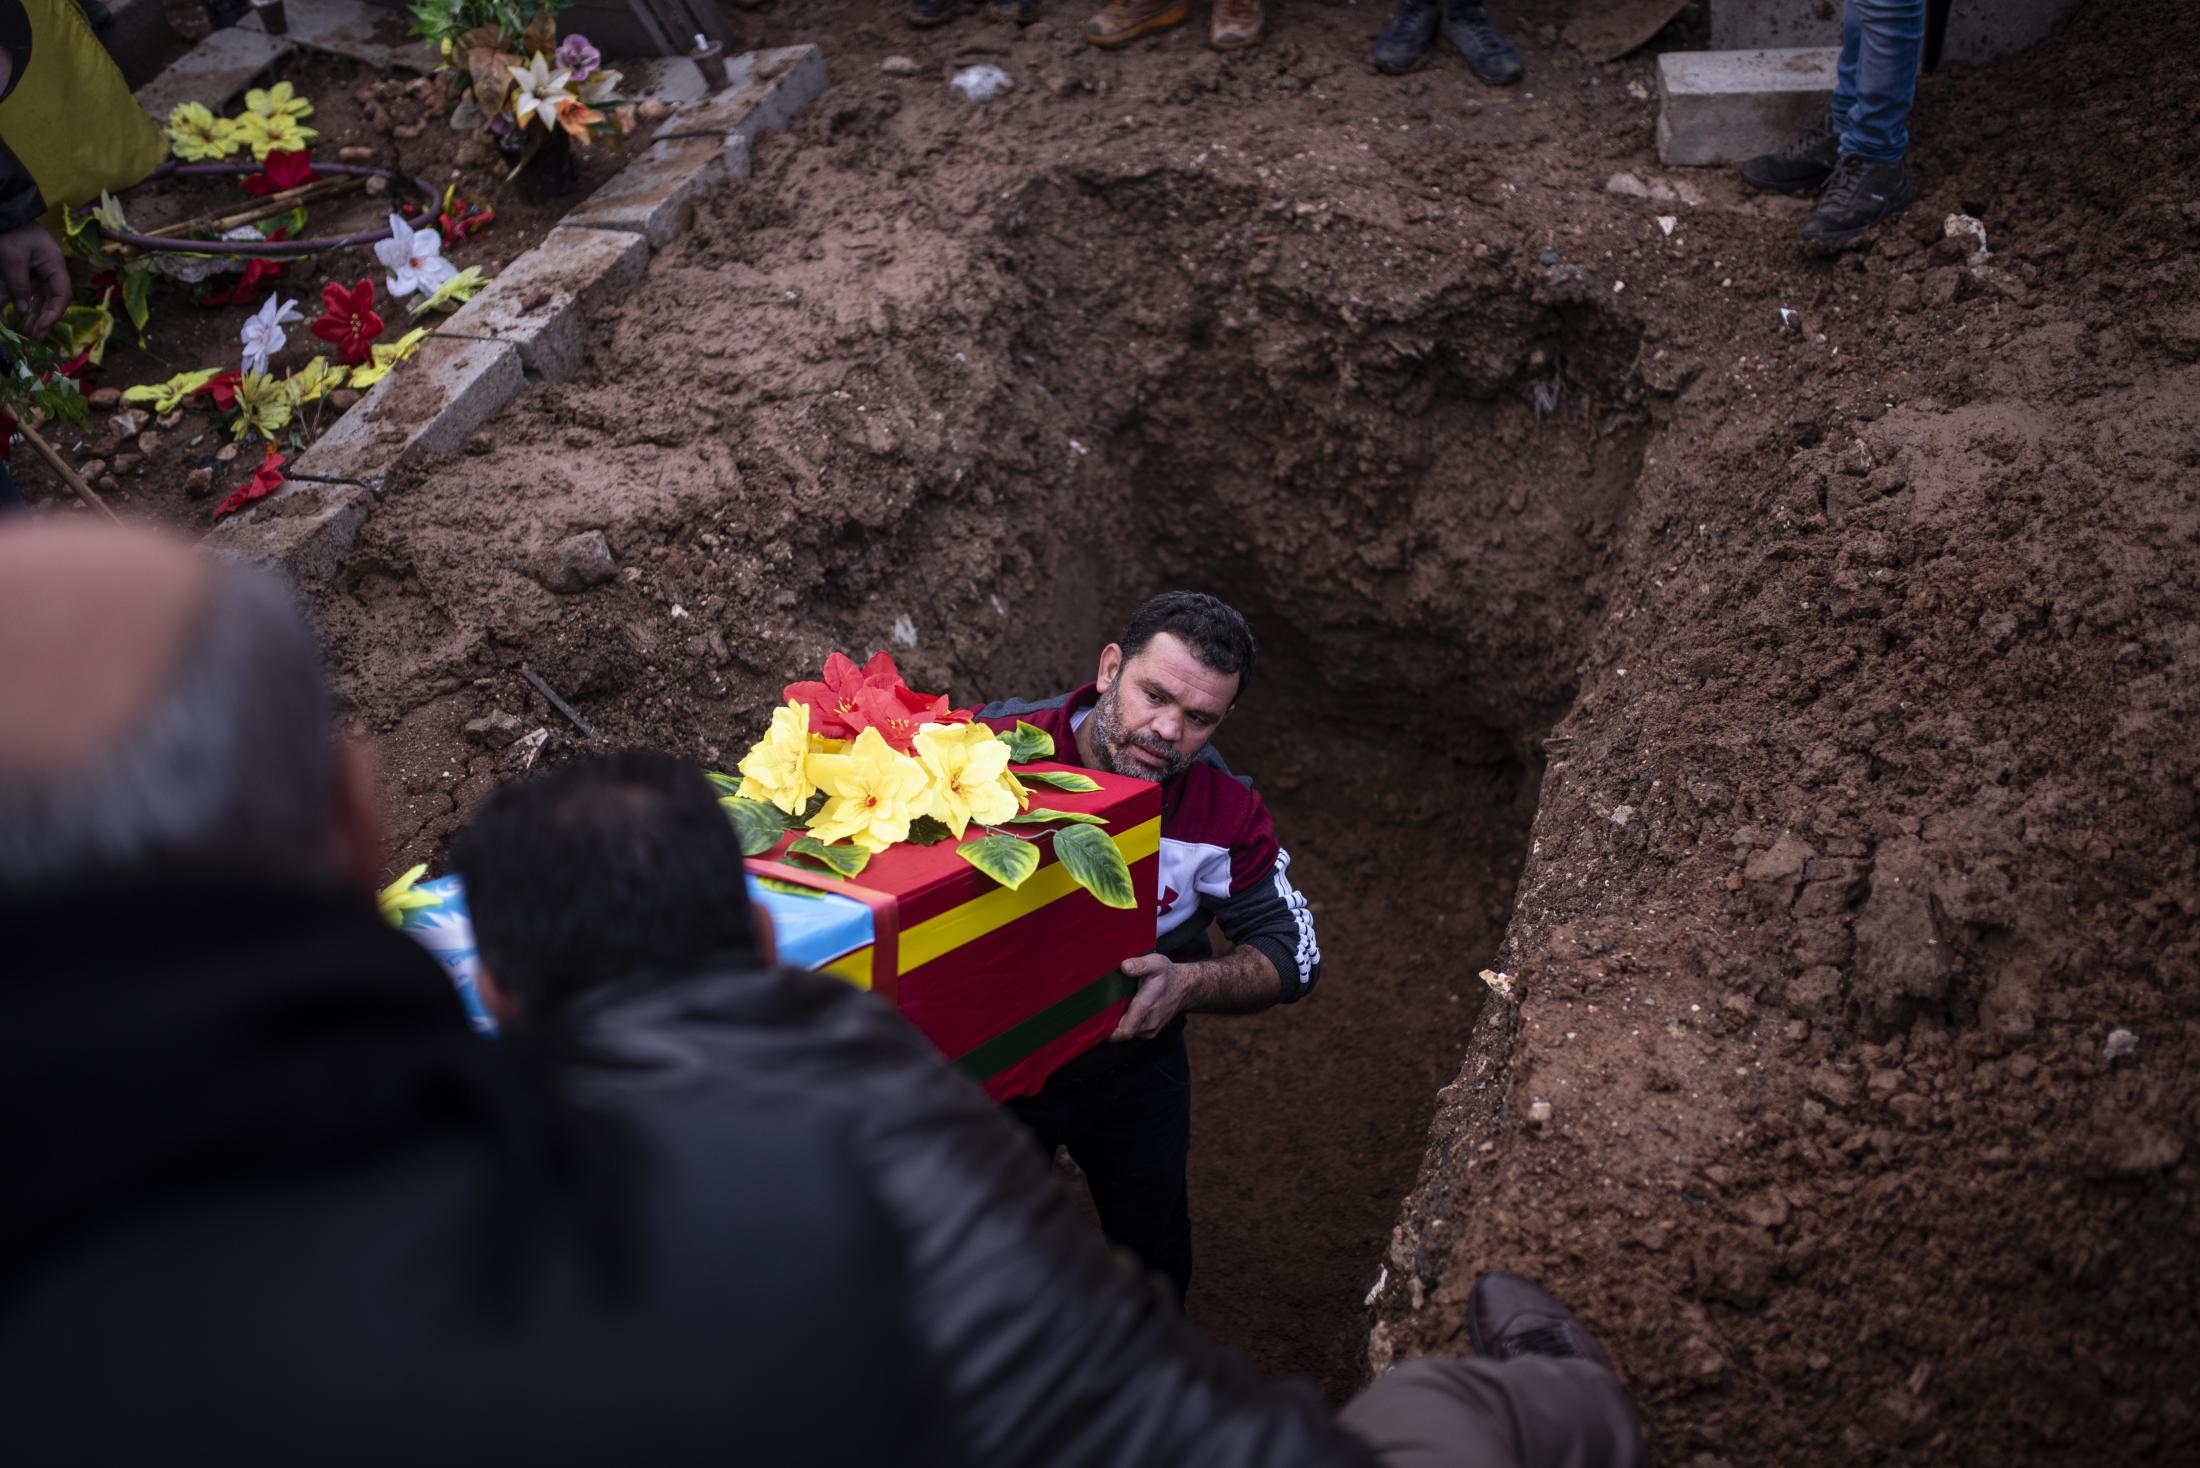 Comrades help in the burial of a Asayis killed in a mortar attack in the Tel Tamer area. After the withdrawal of US troops from northern Syria in October 2019, Turkey launched an offensive against the predominantly Kurdish areas in the northeast of the country along Islamist forces. Calls for war crimes investigations into the conduct of Ankara-backed militias are mounting ever since. (Andoni Lubaki / Euskal Fondoa)